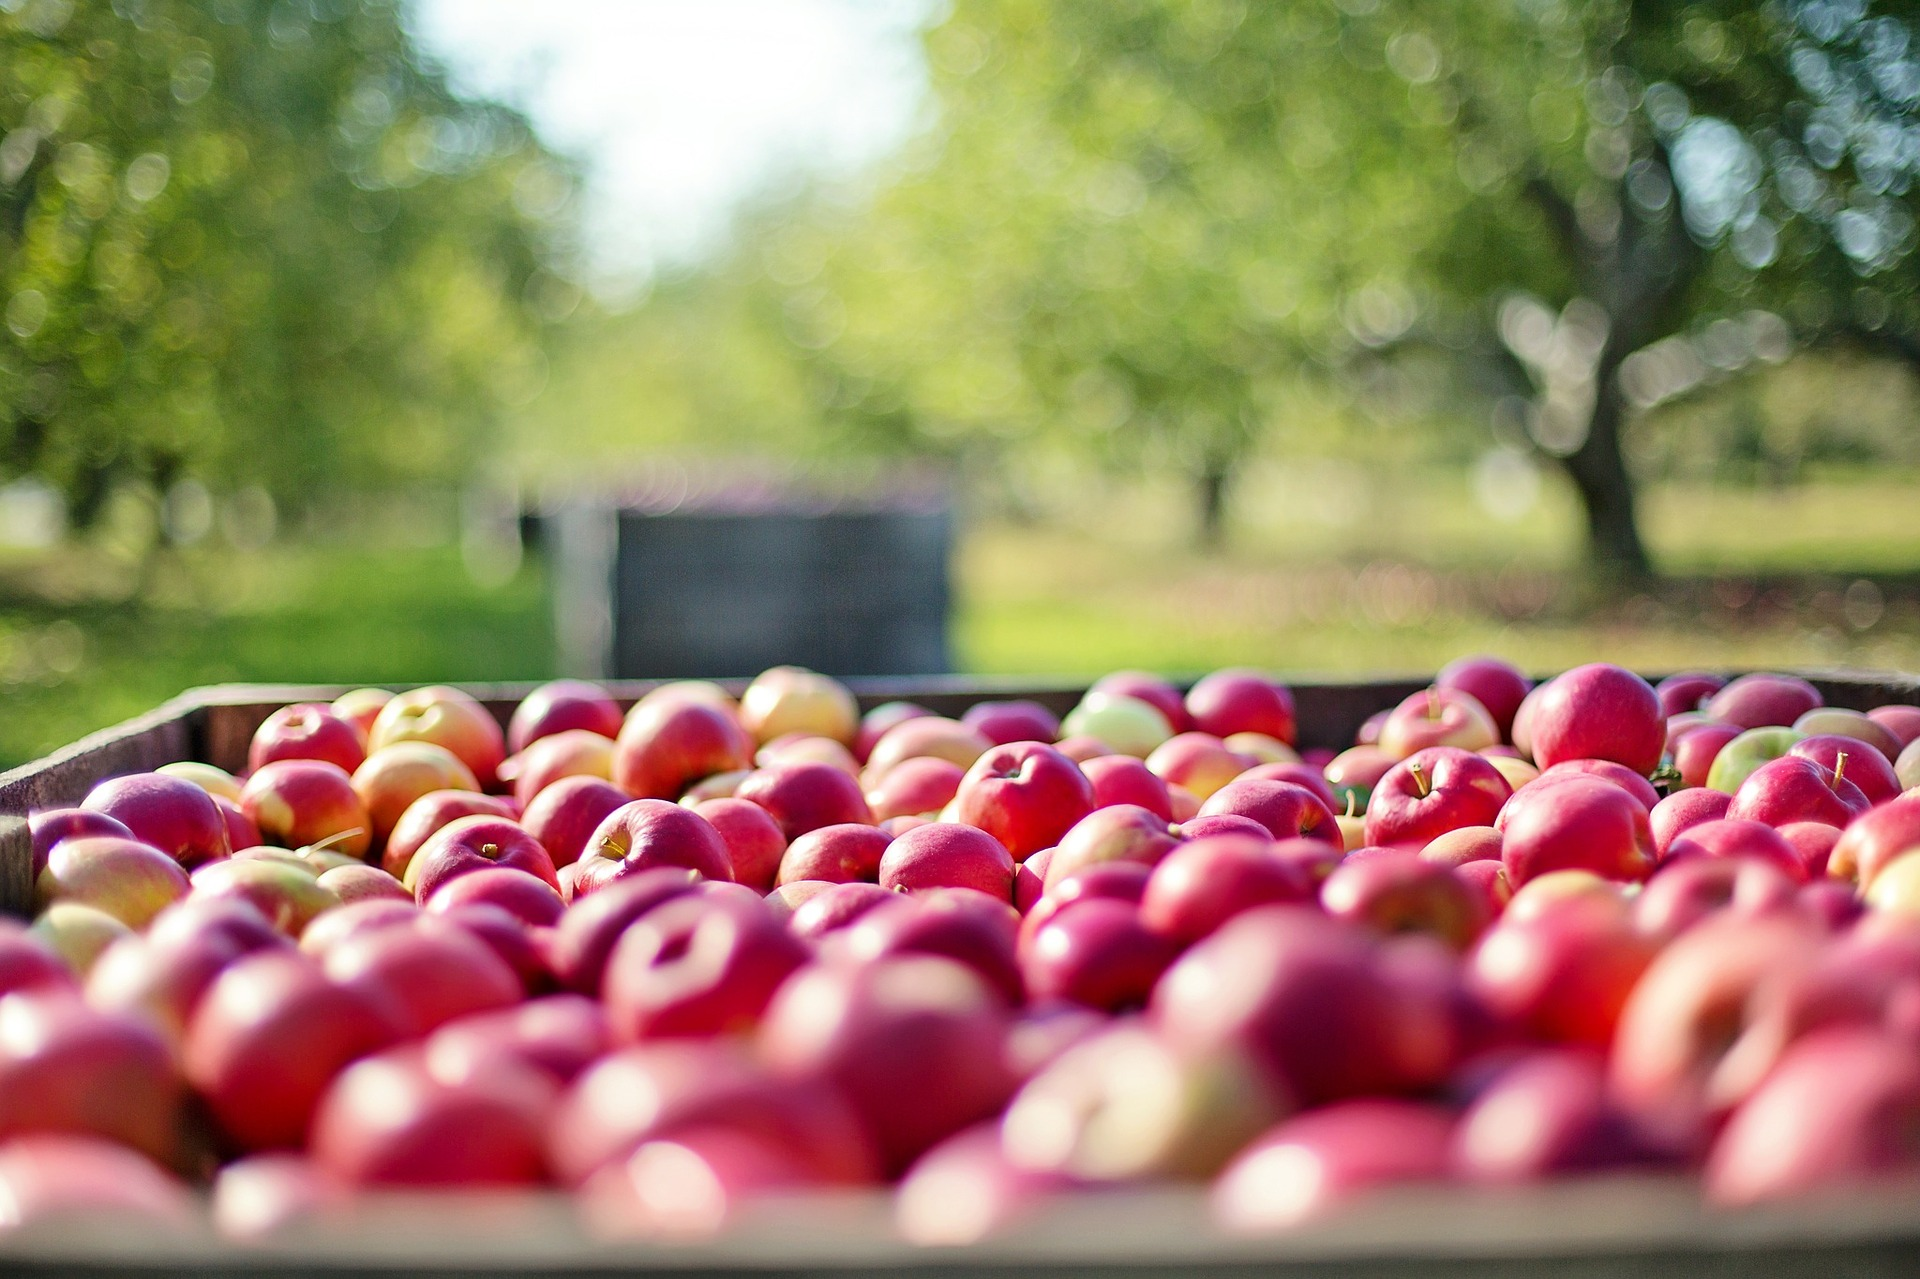 There are over 7,500 orchards today, with many offering pick-your-own.